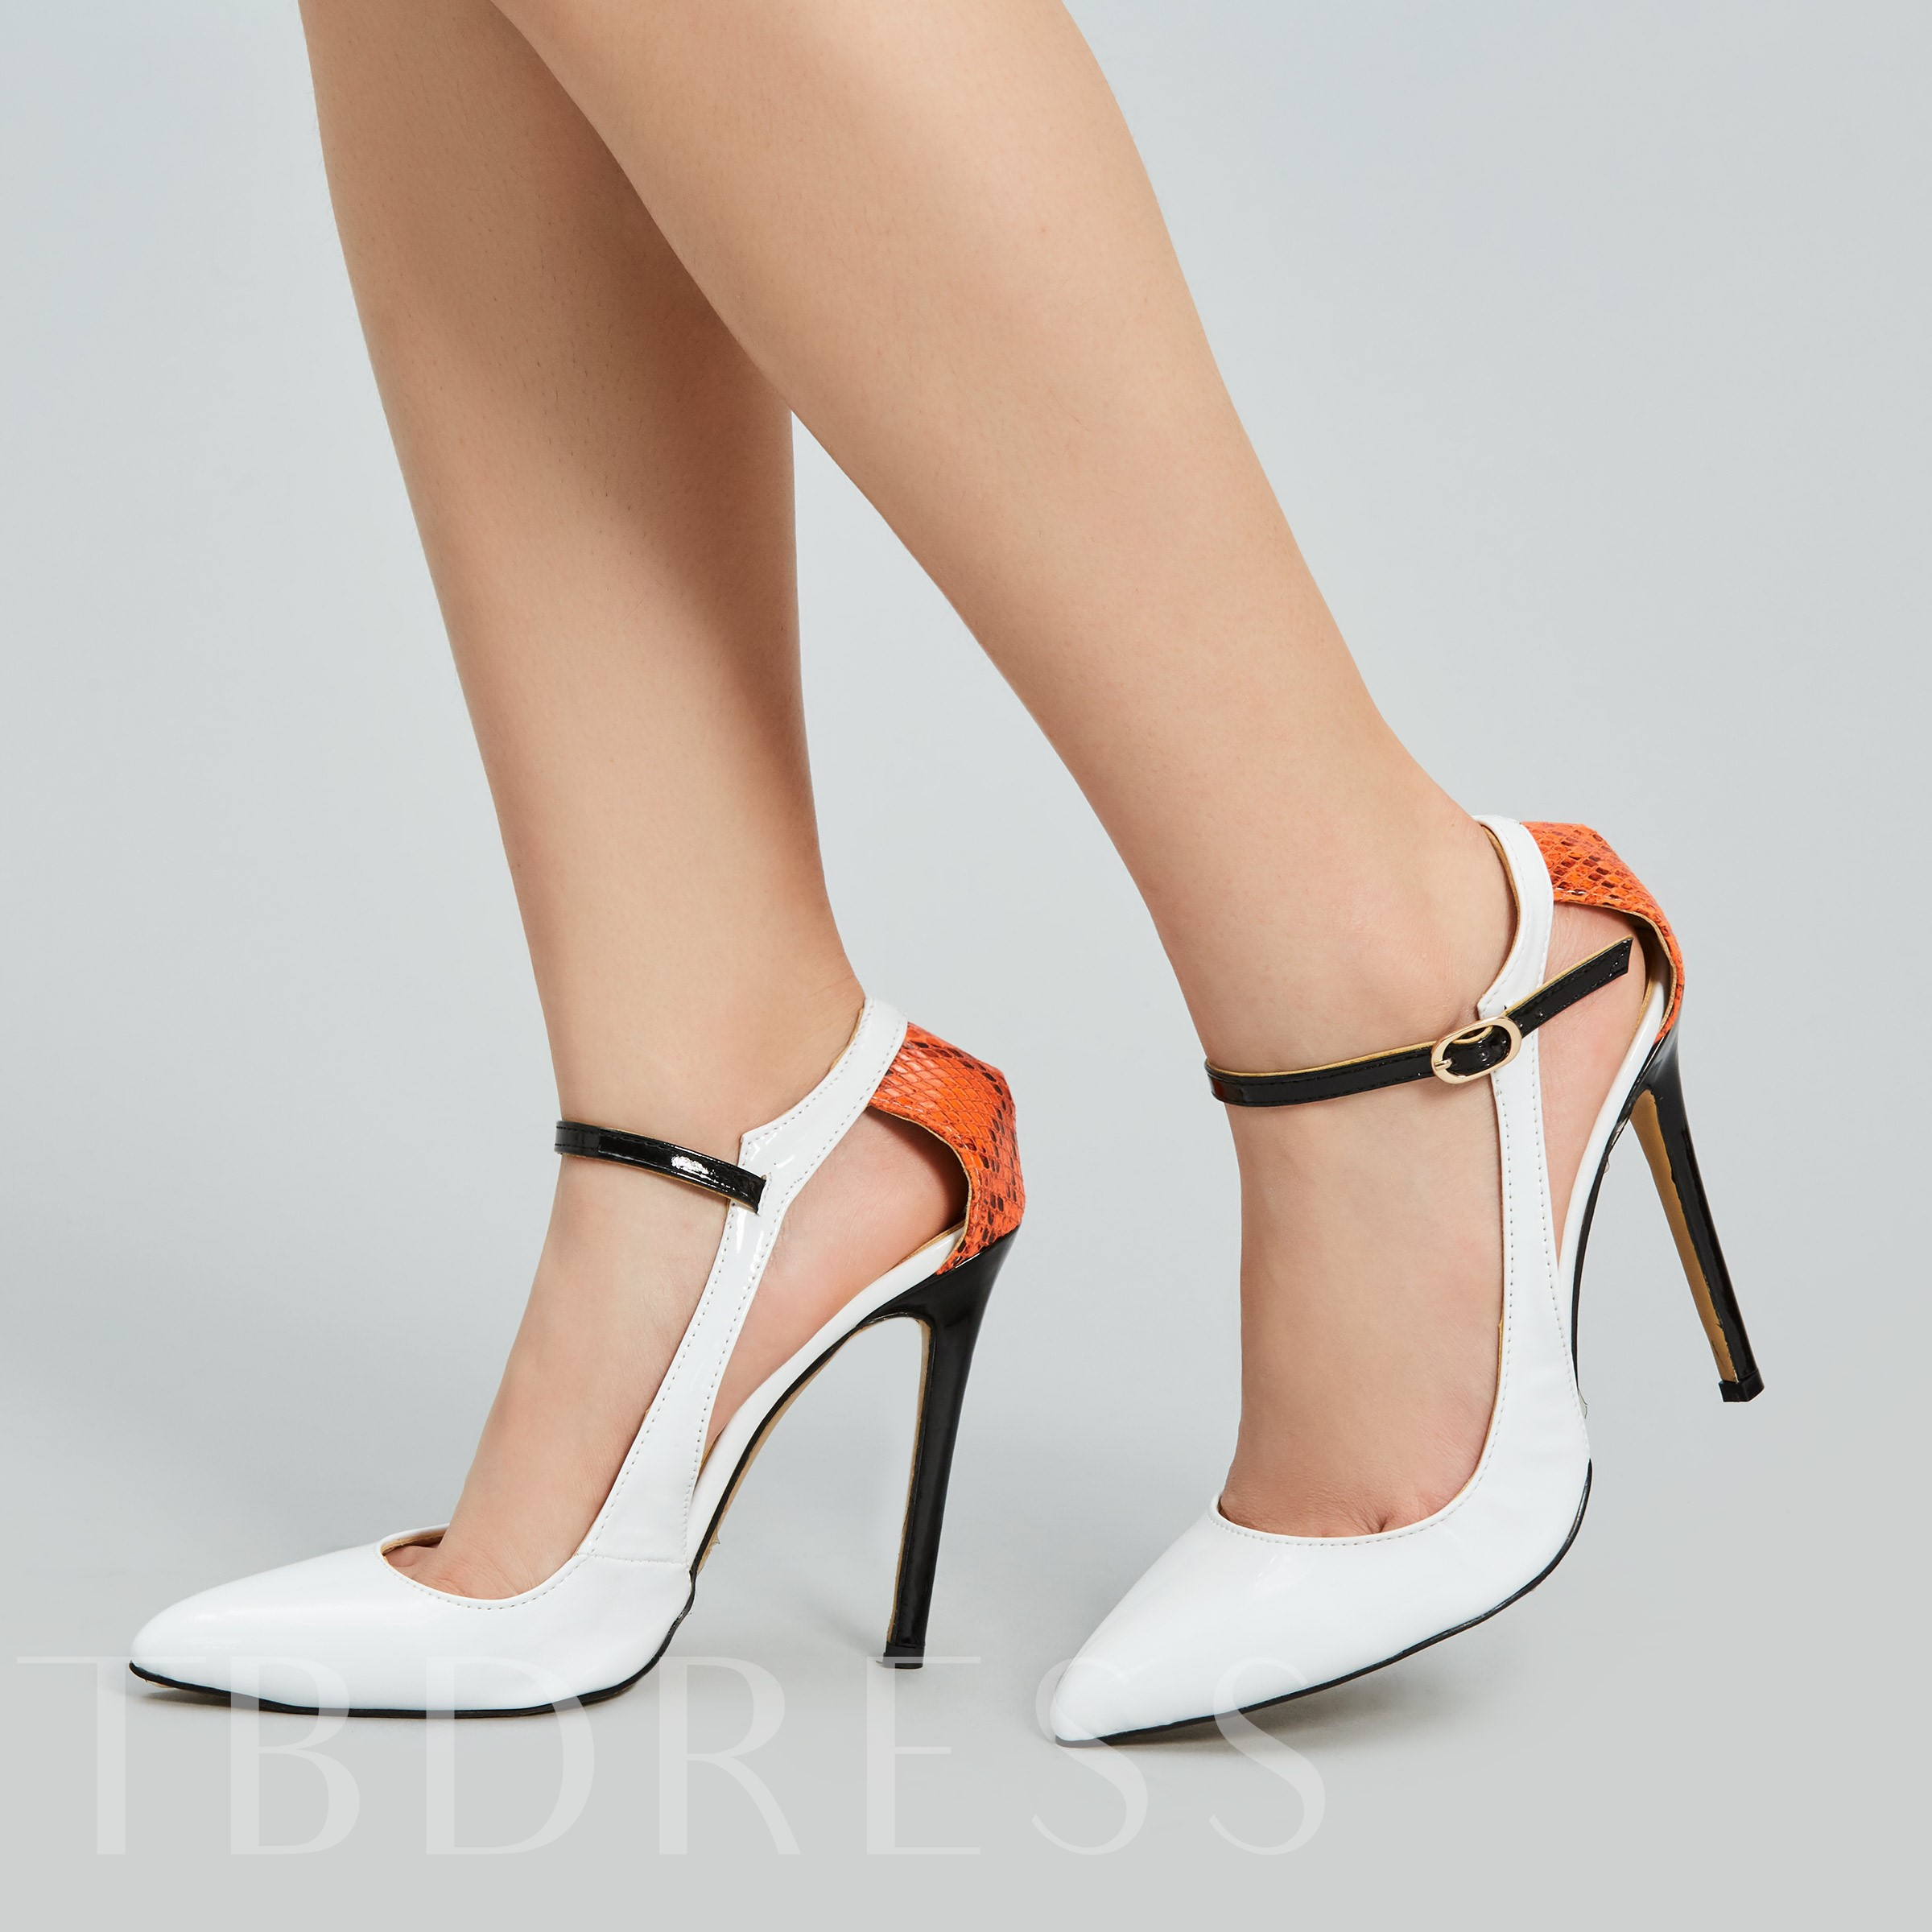 Buy Pointed Toe Stiletto Heel Hollow Lace Women's Pumps, Sheshoe, Spring,Fall, 12440542 for $58.99 in TBDress store